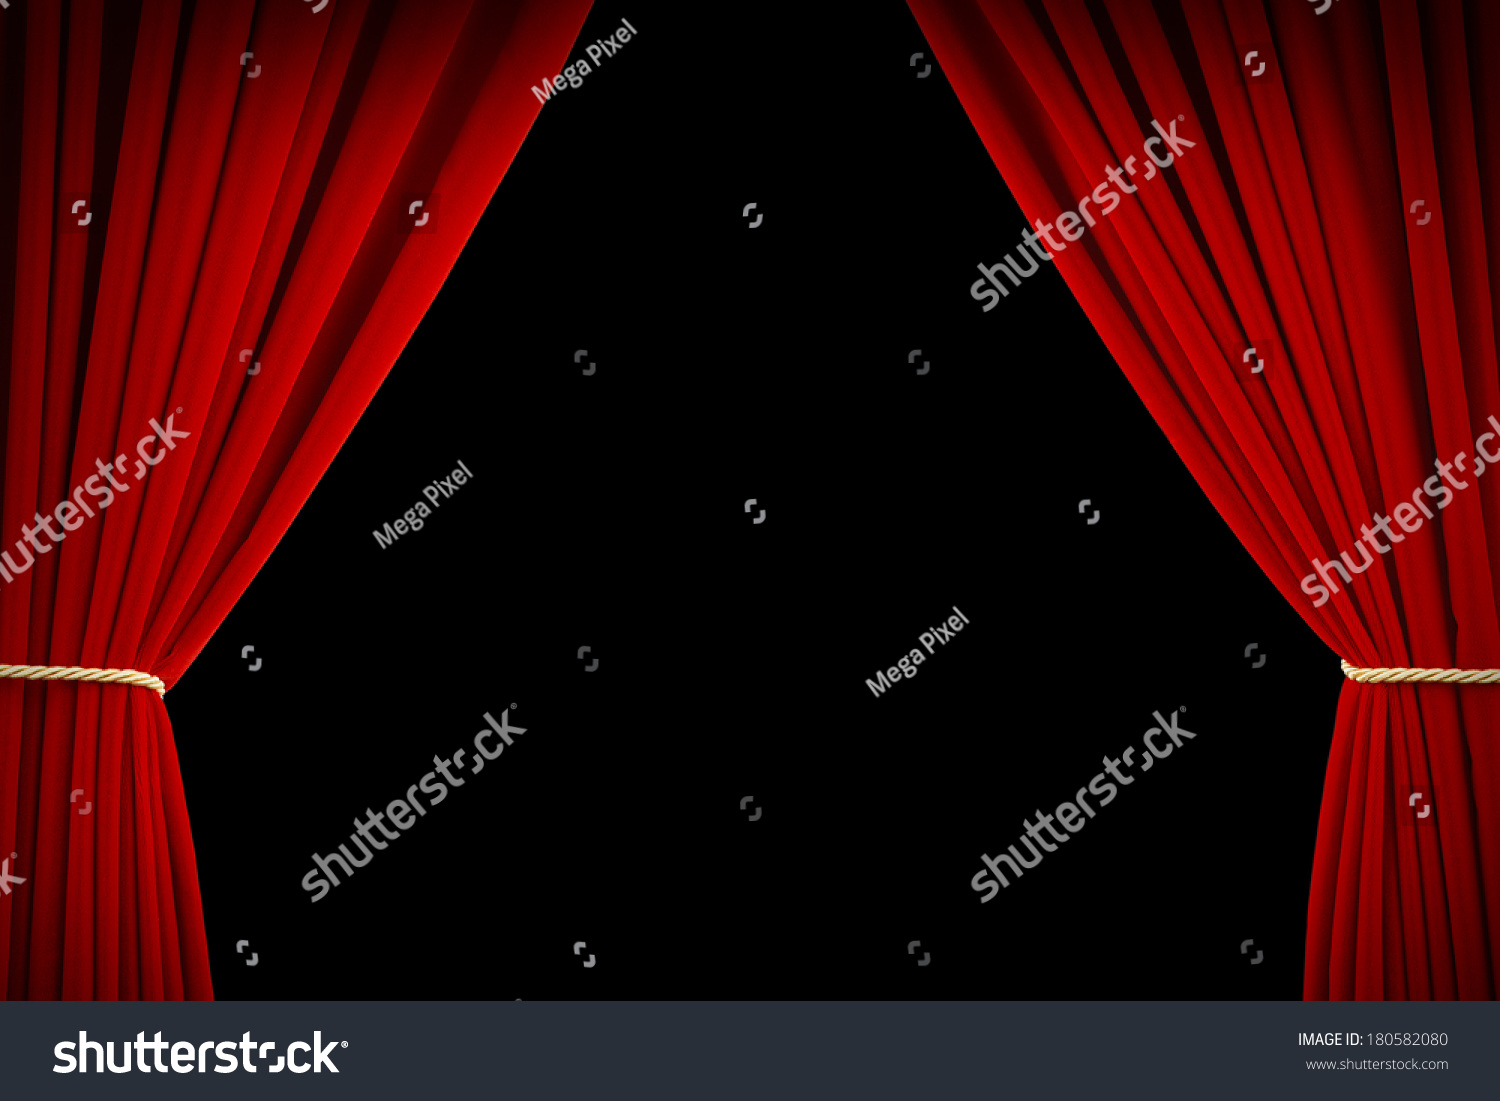 Red stage curtains open - Open Red Velvet Movie Curtains With Black Screen